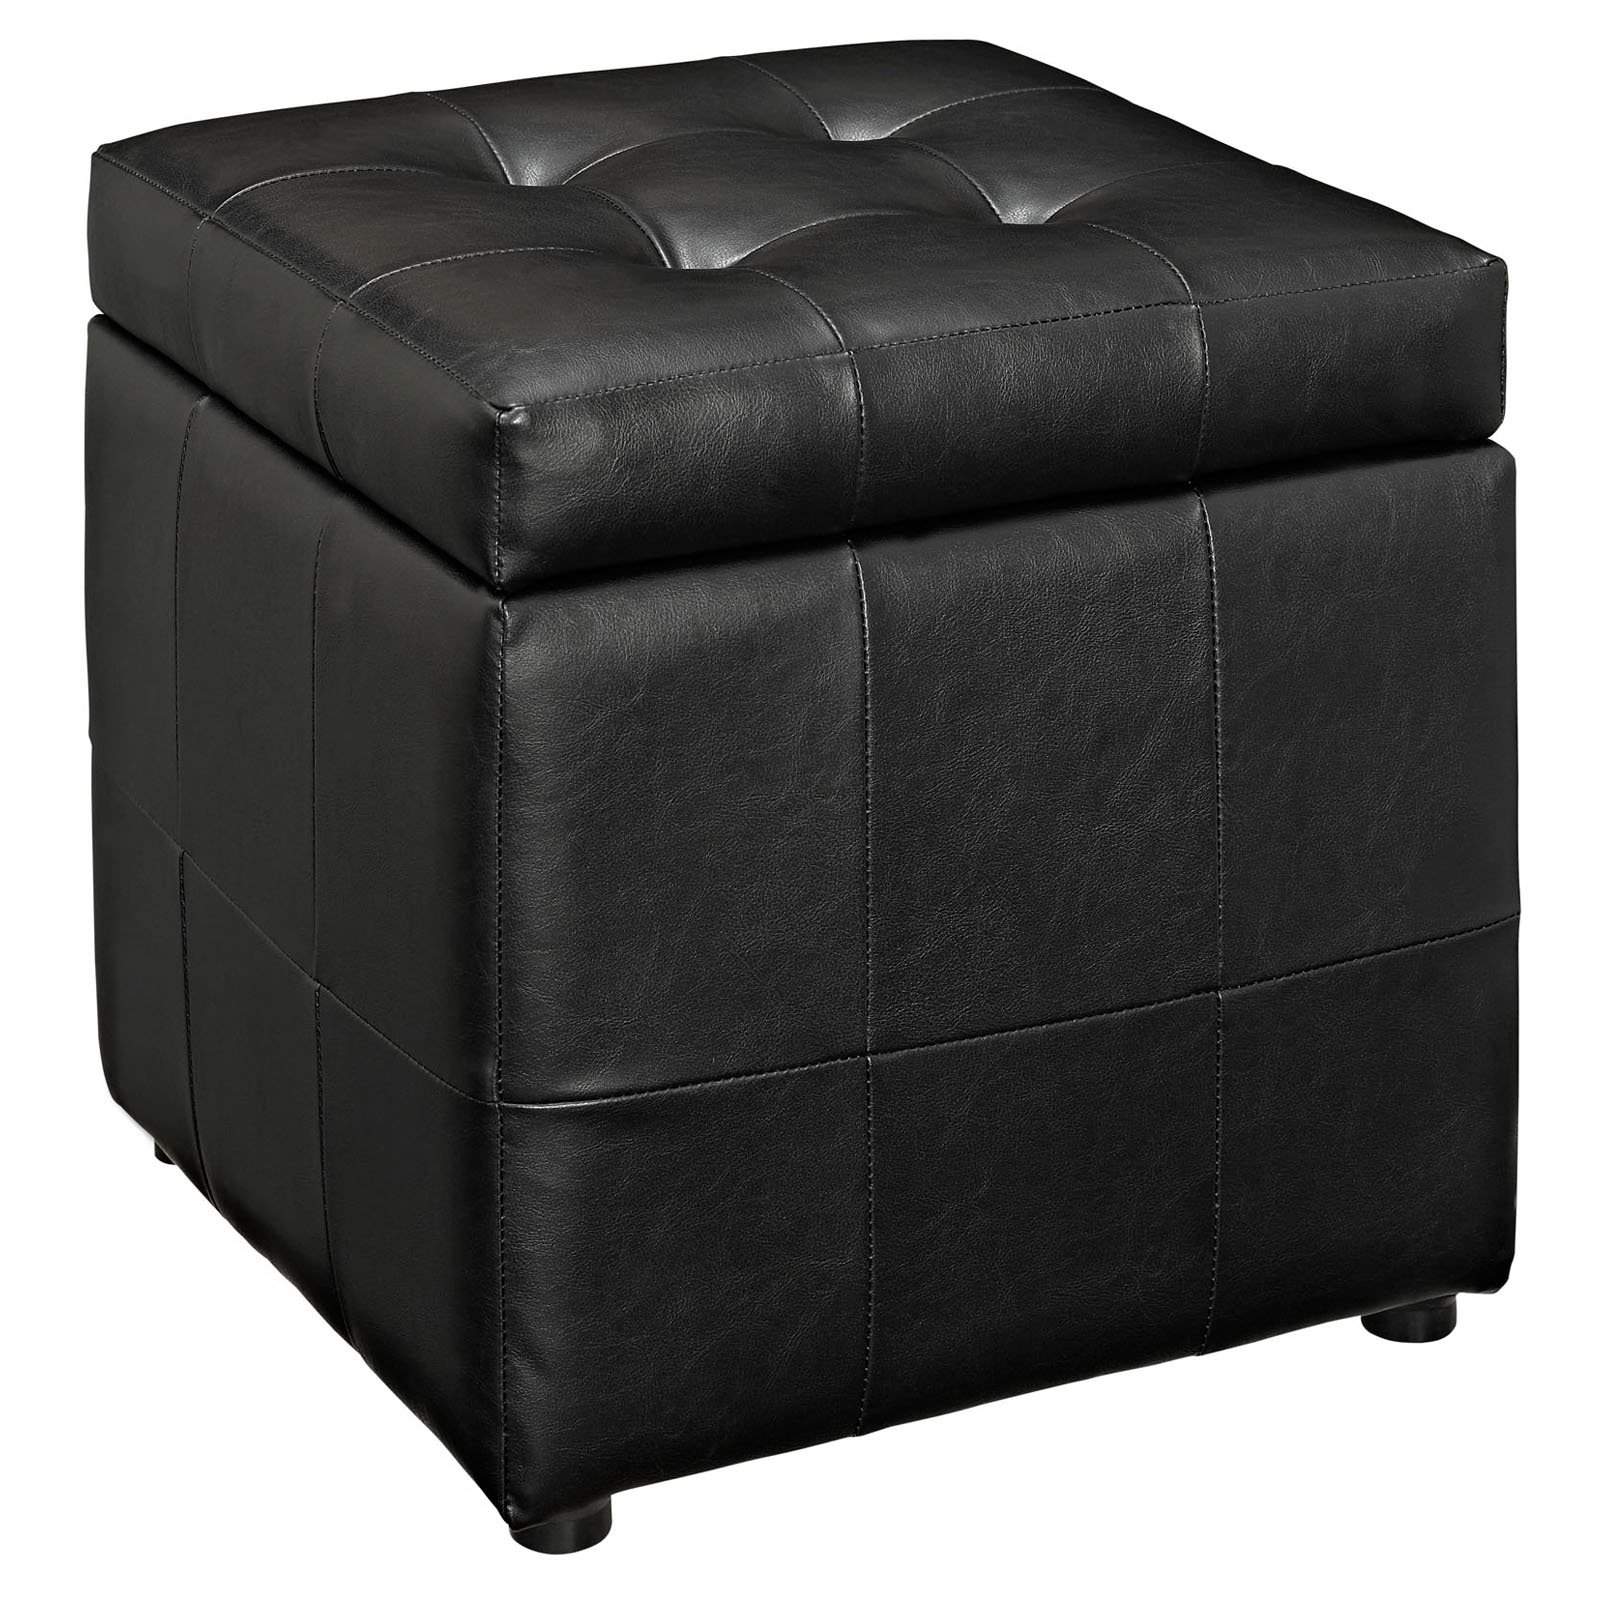 Modway Volt Leatherette Storage Ottoman, Multiple Colors